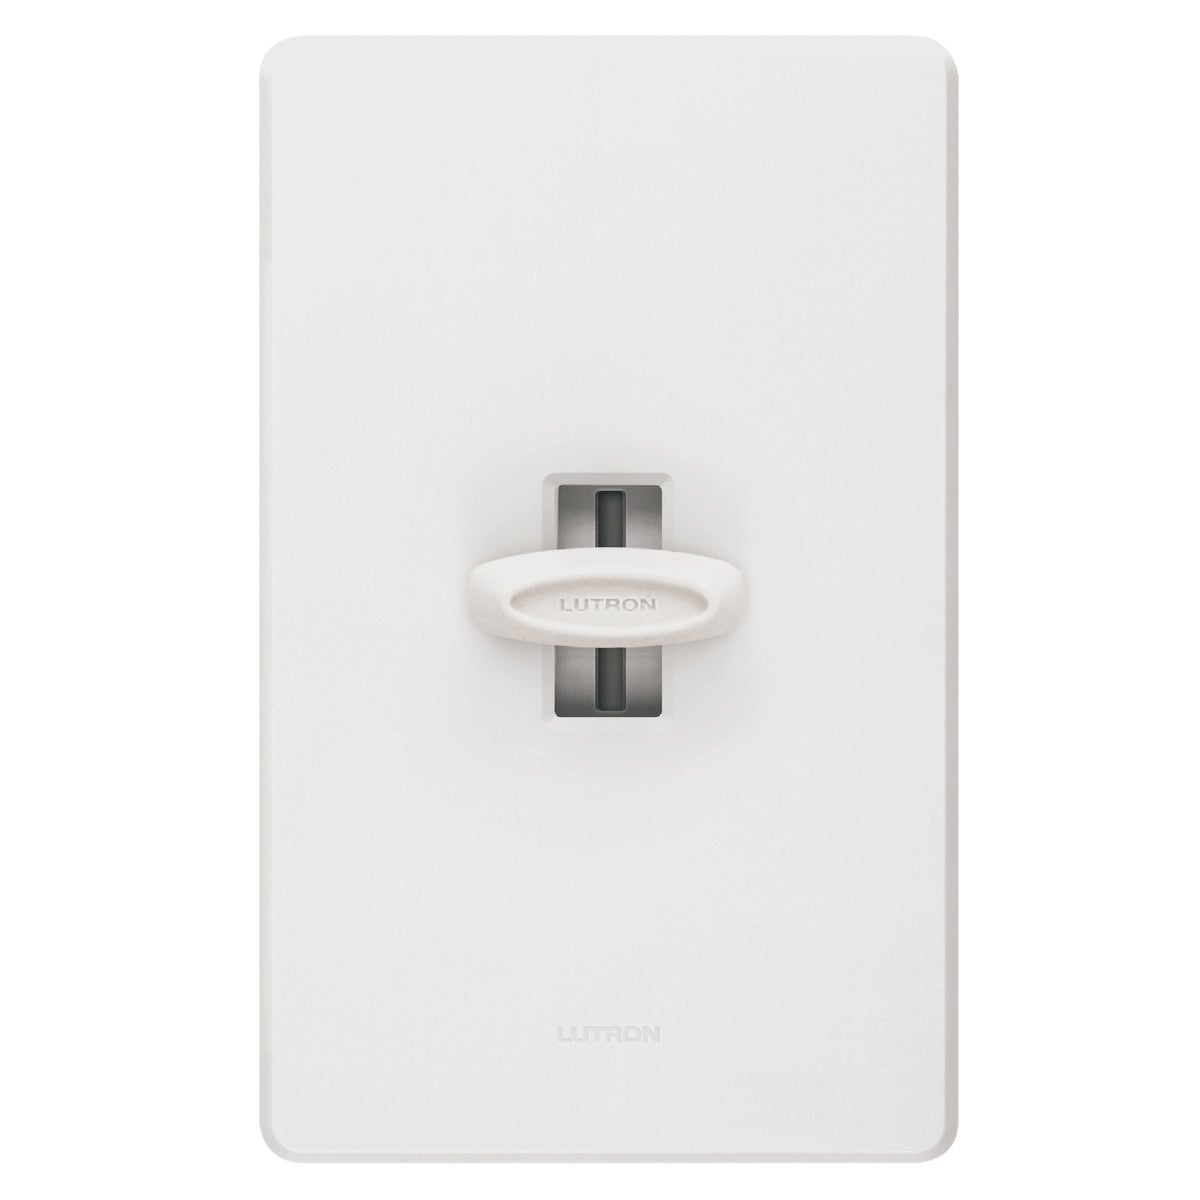 600W WH/IV SLIDE DIMMER - GL-600H-DK by Lutron Elect Co Inc